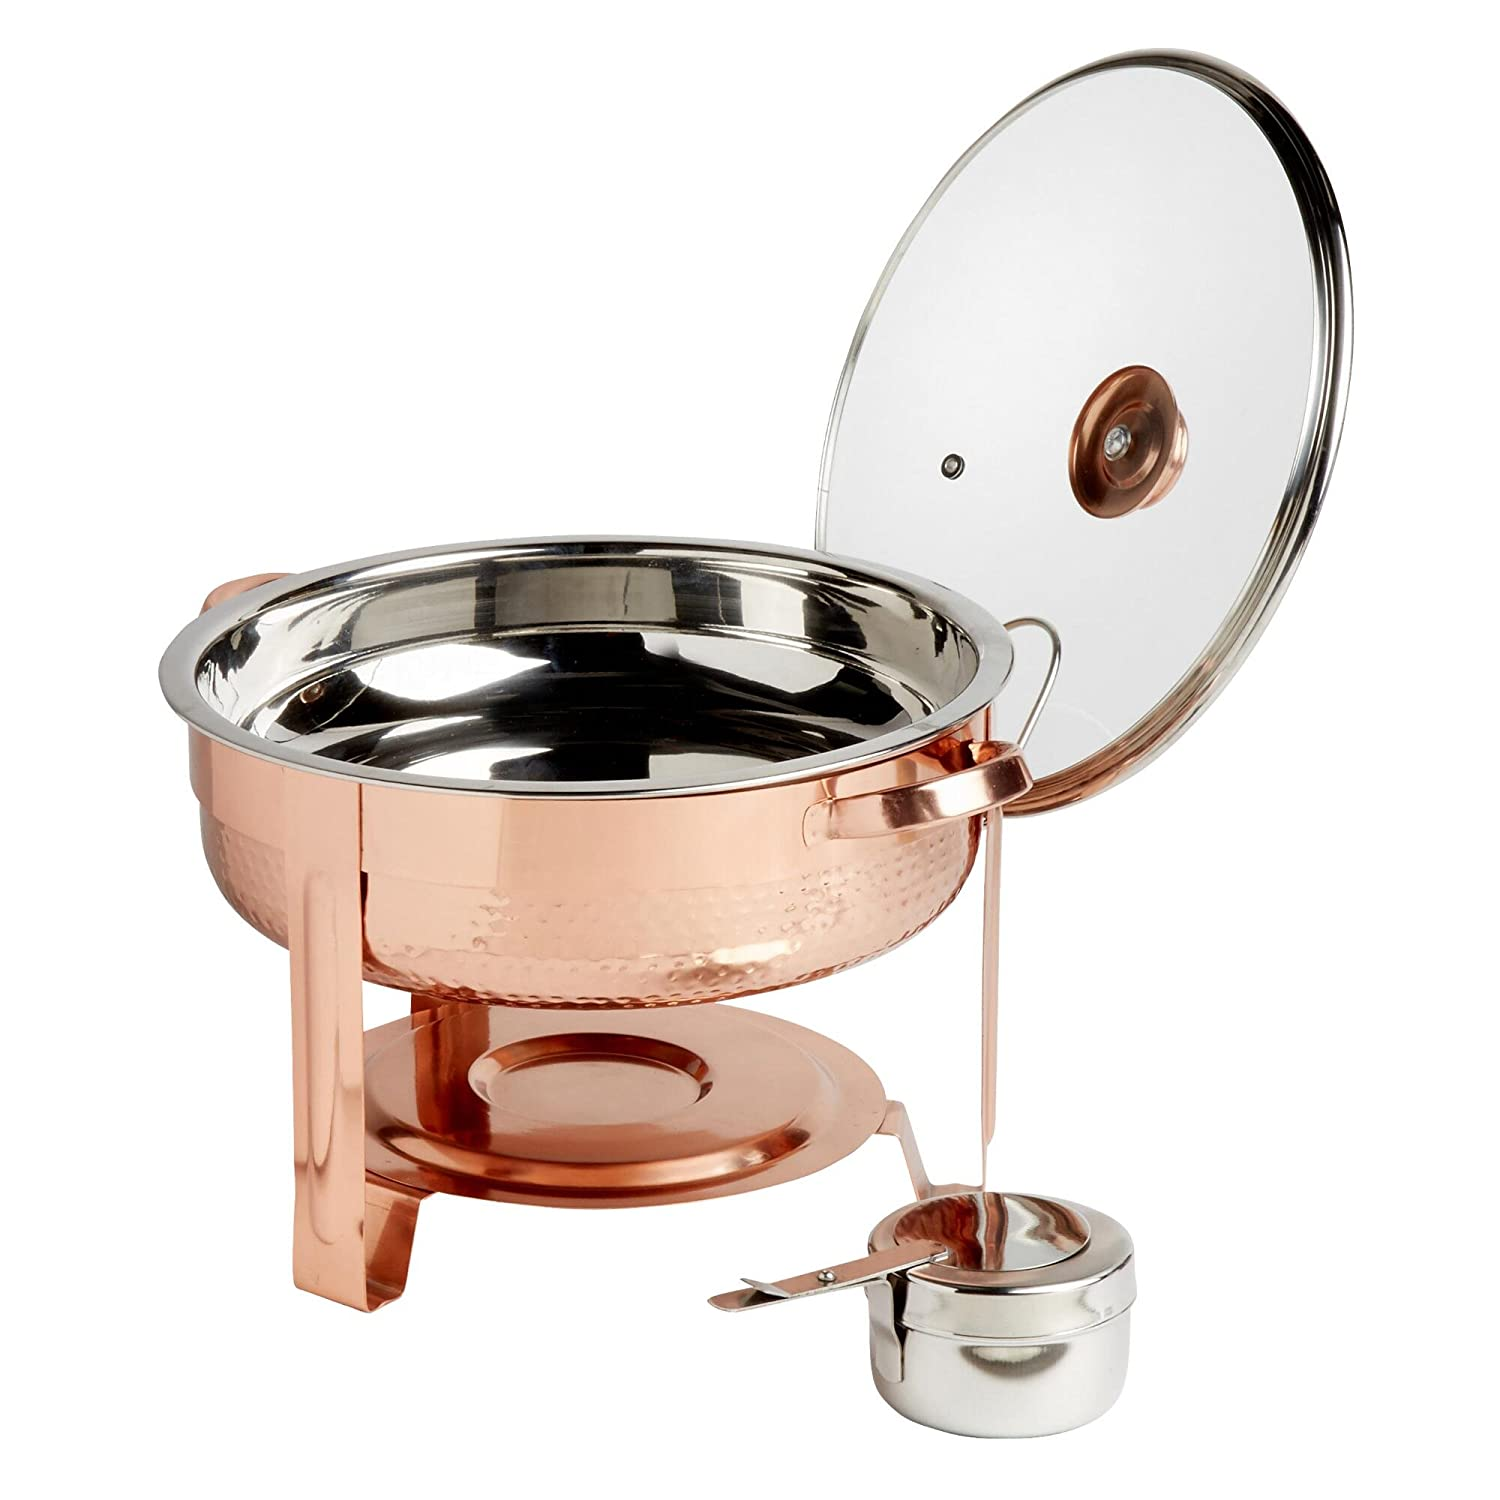 4-Quart Hammered Copper Chafing Dish Set